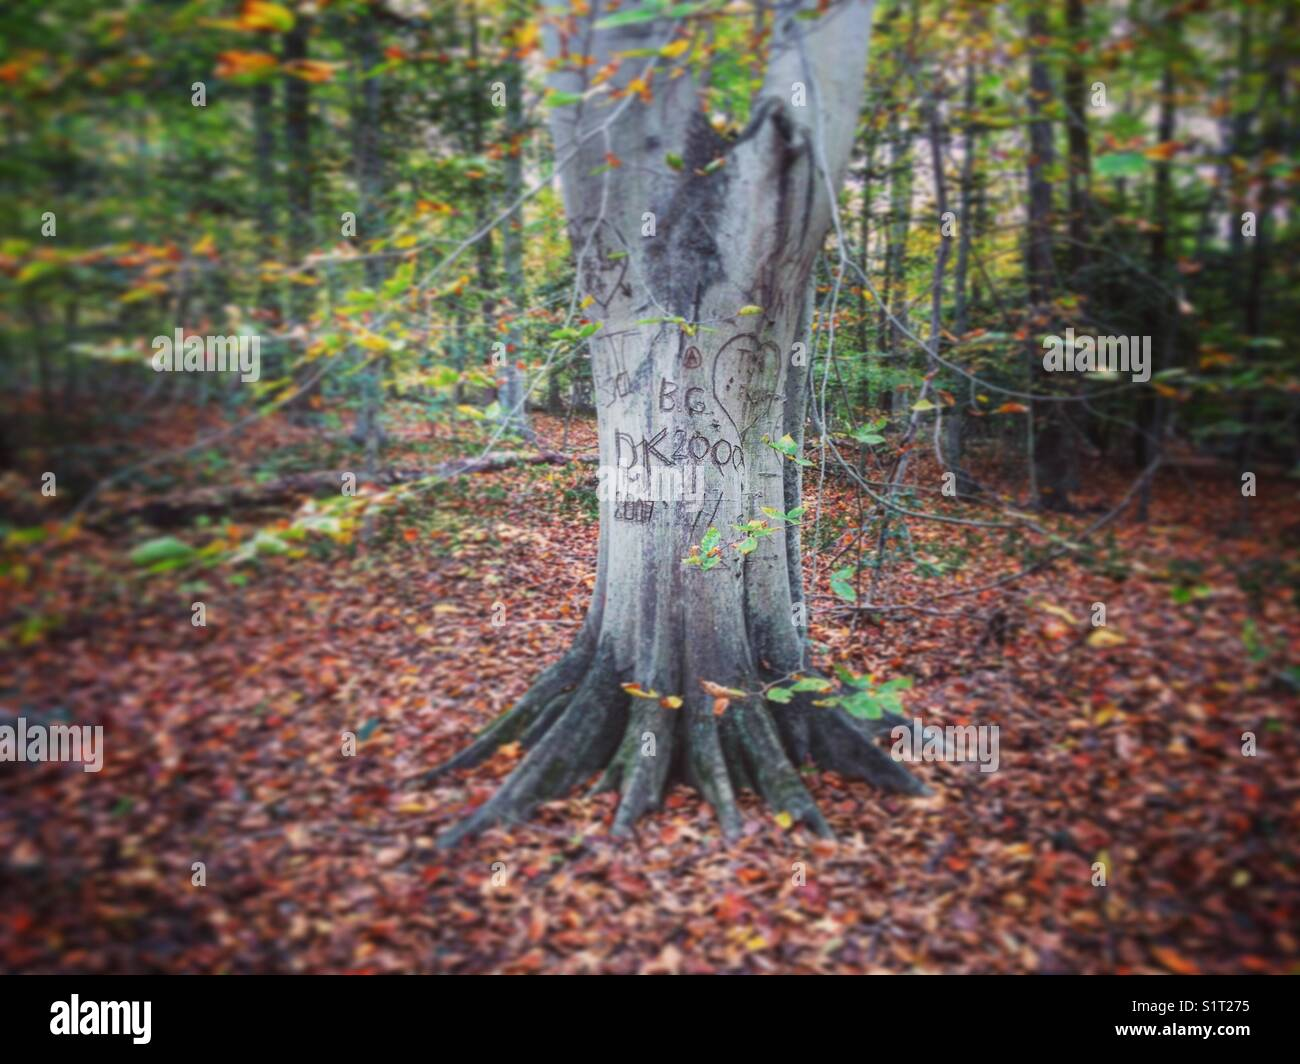 Tree carved with names and hearts in autumn foliage. - Stock Image